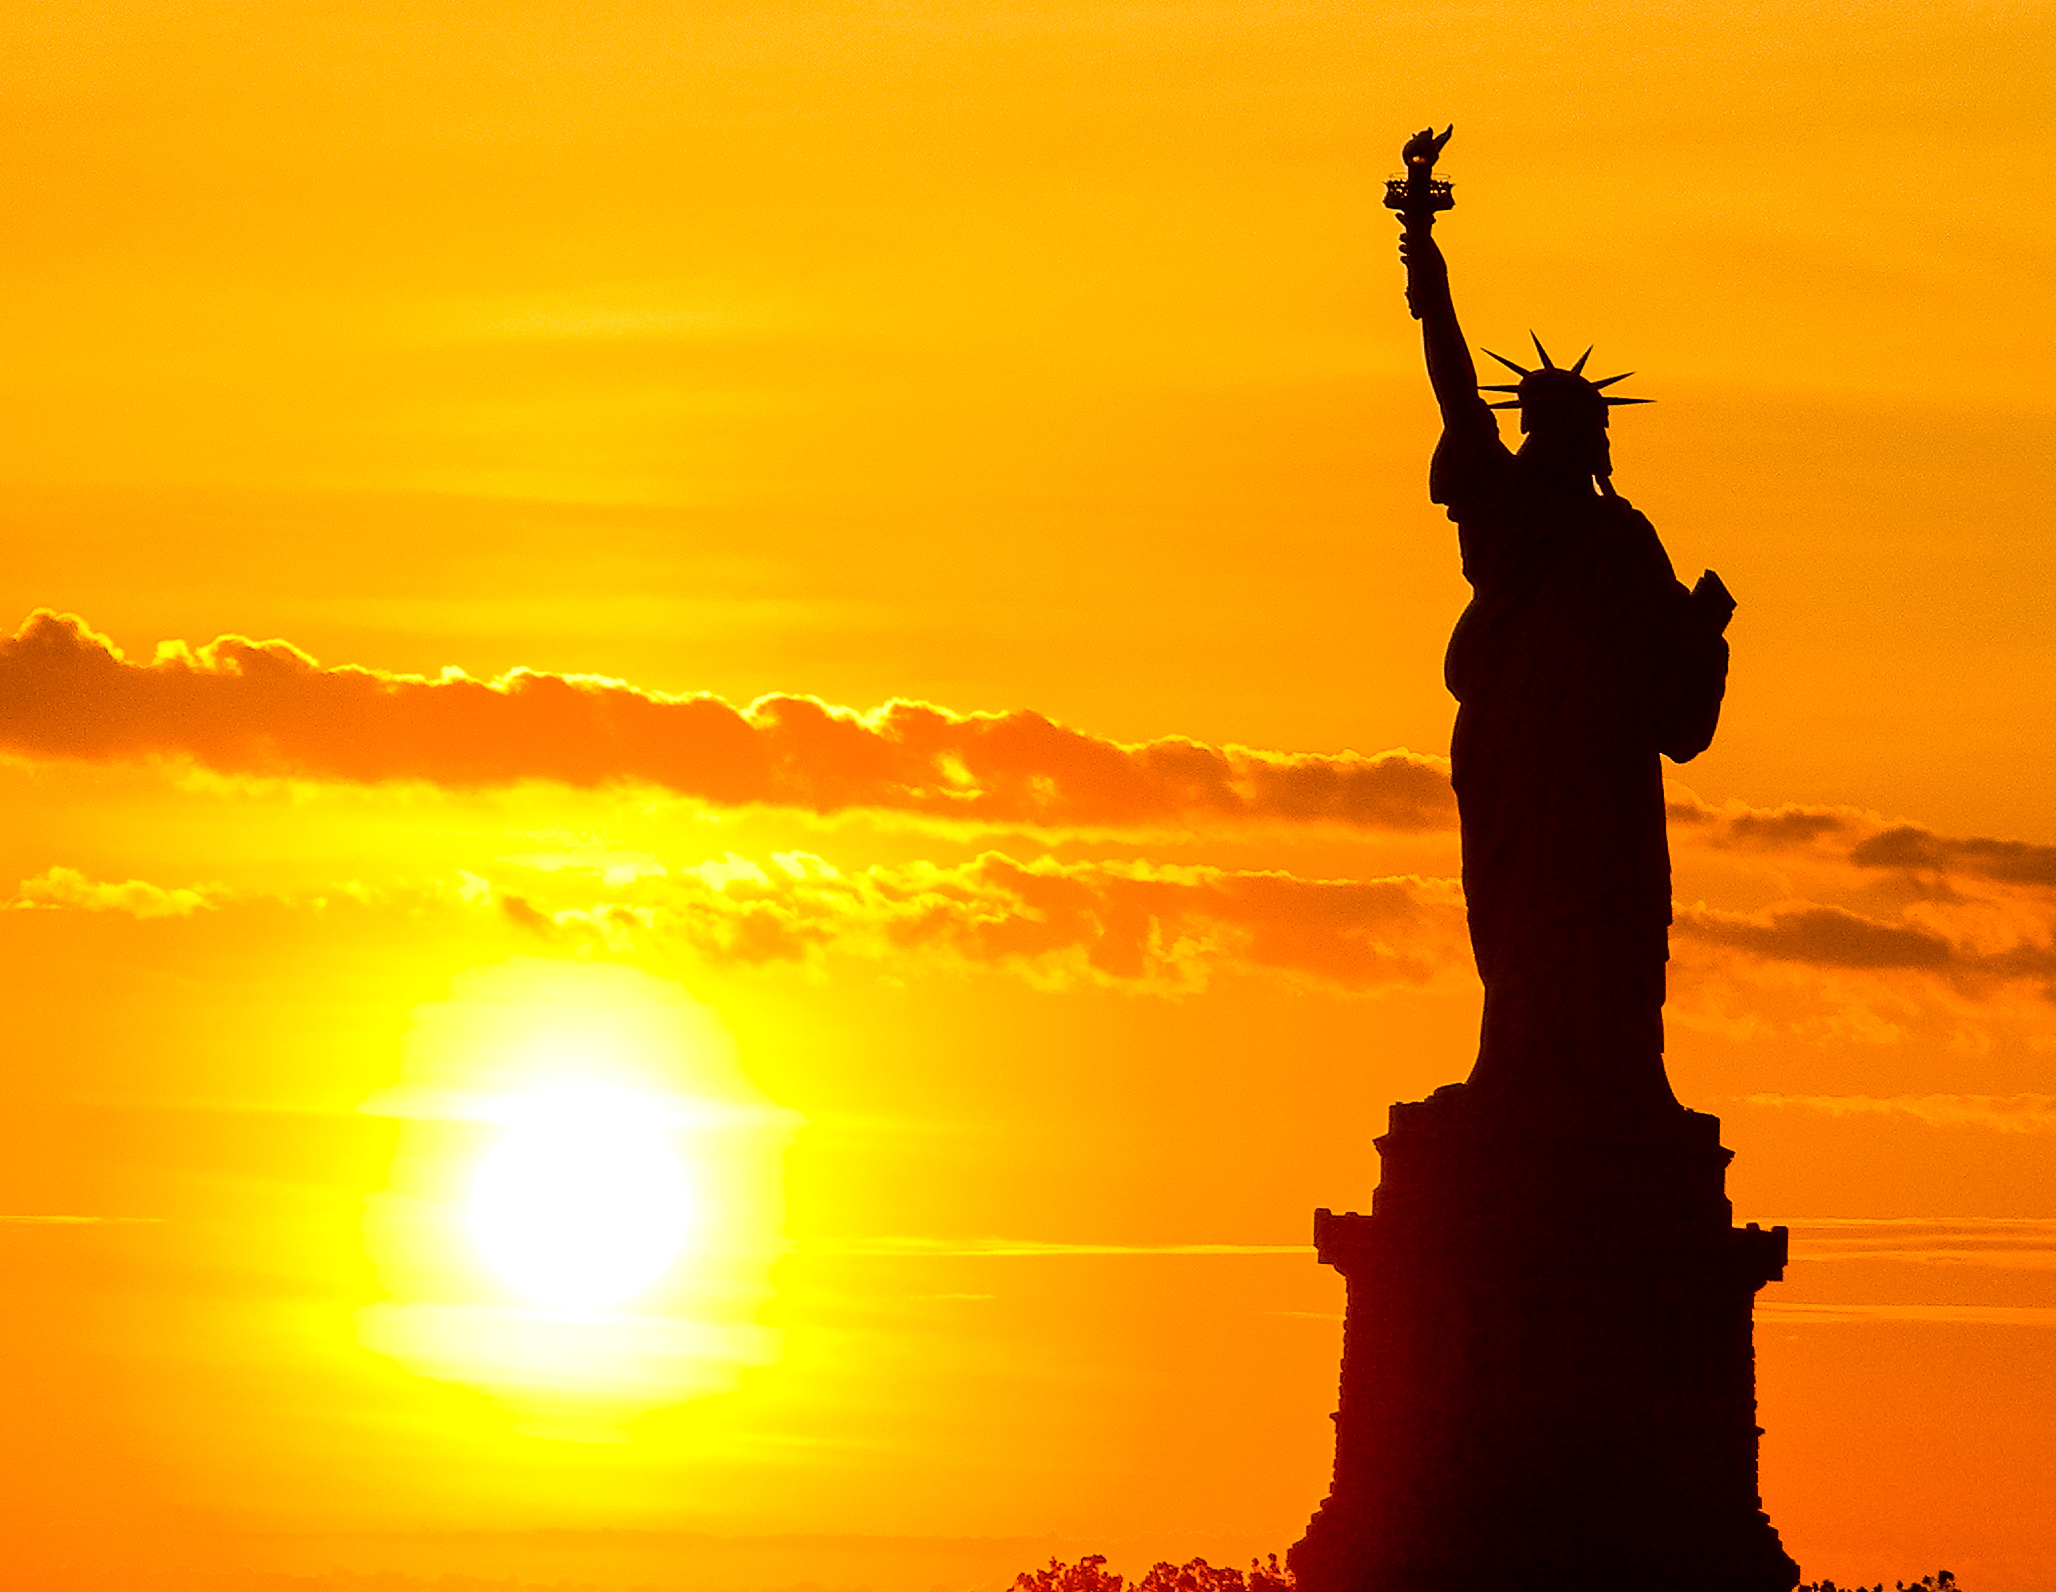 Statue of Liberty silhouette at sunset